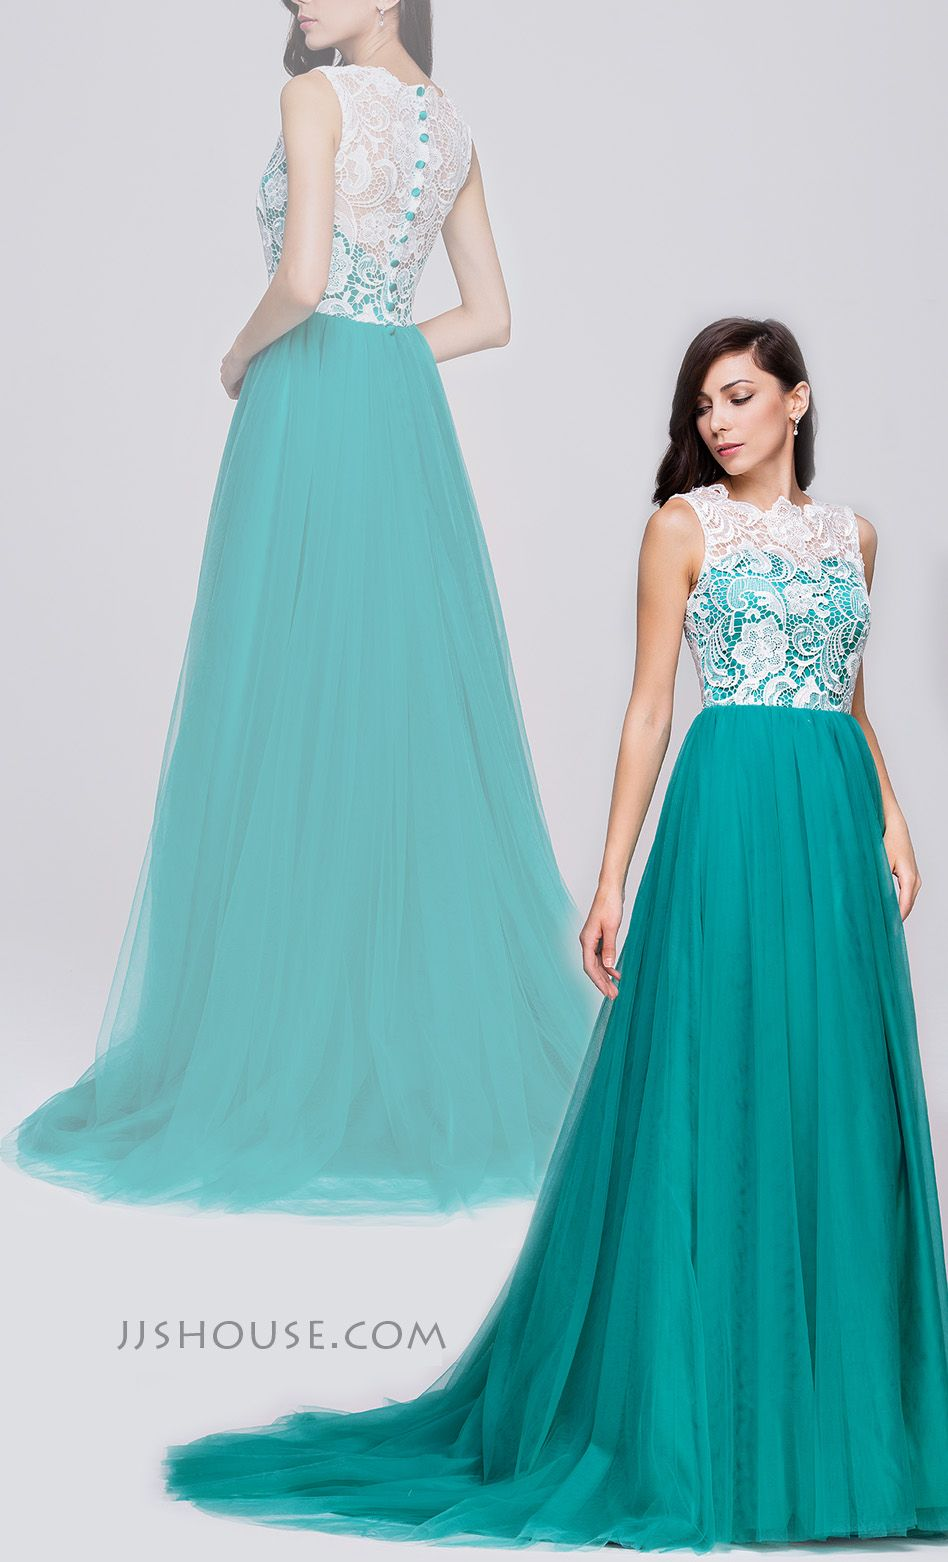 No need to double take, this elegant lace and tulle Prom dress will ...